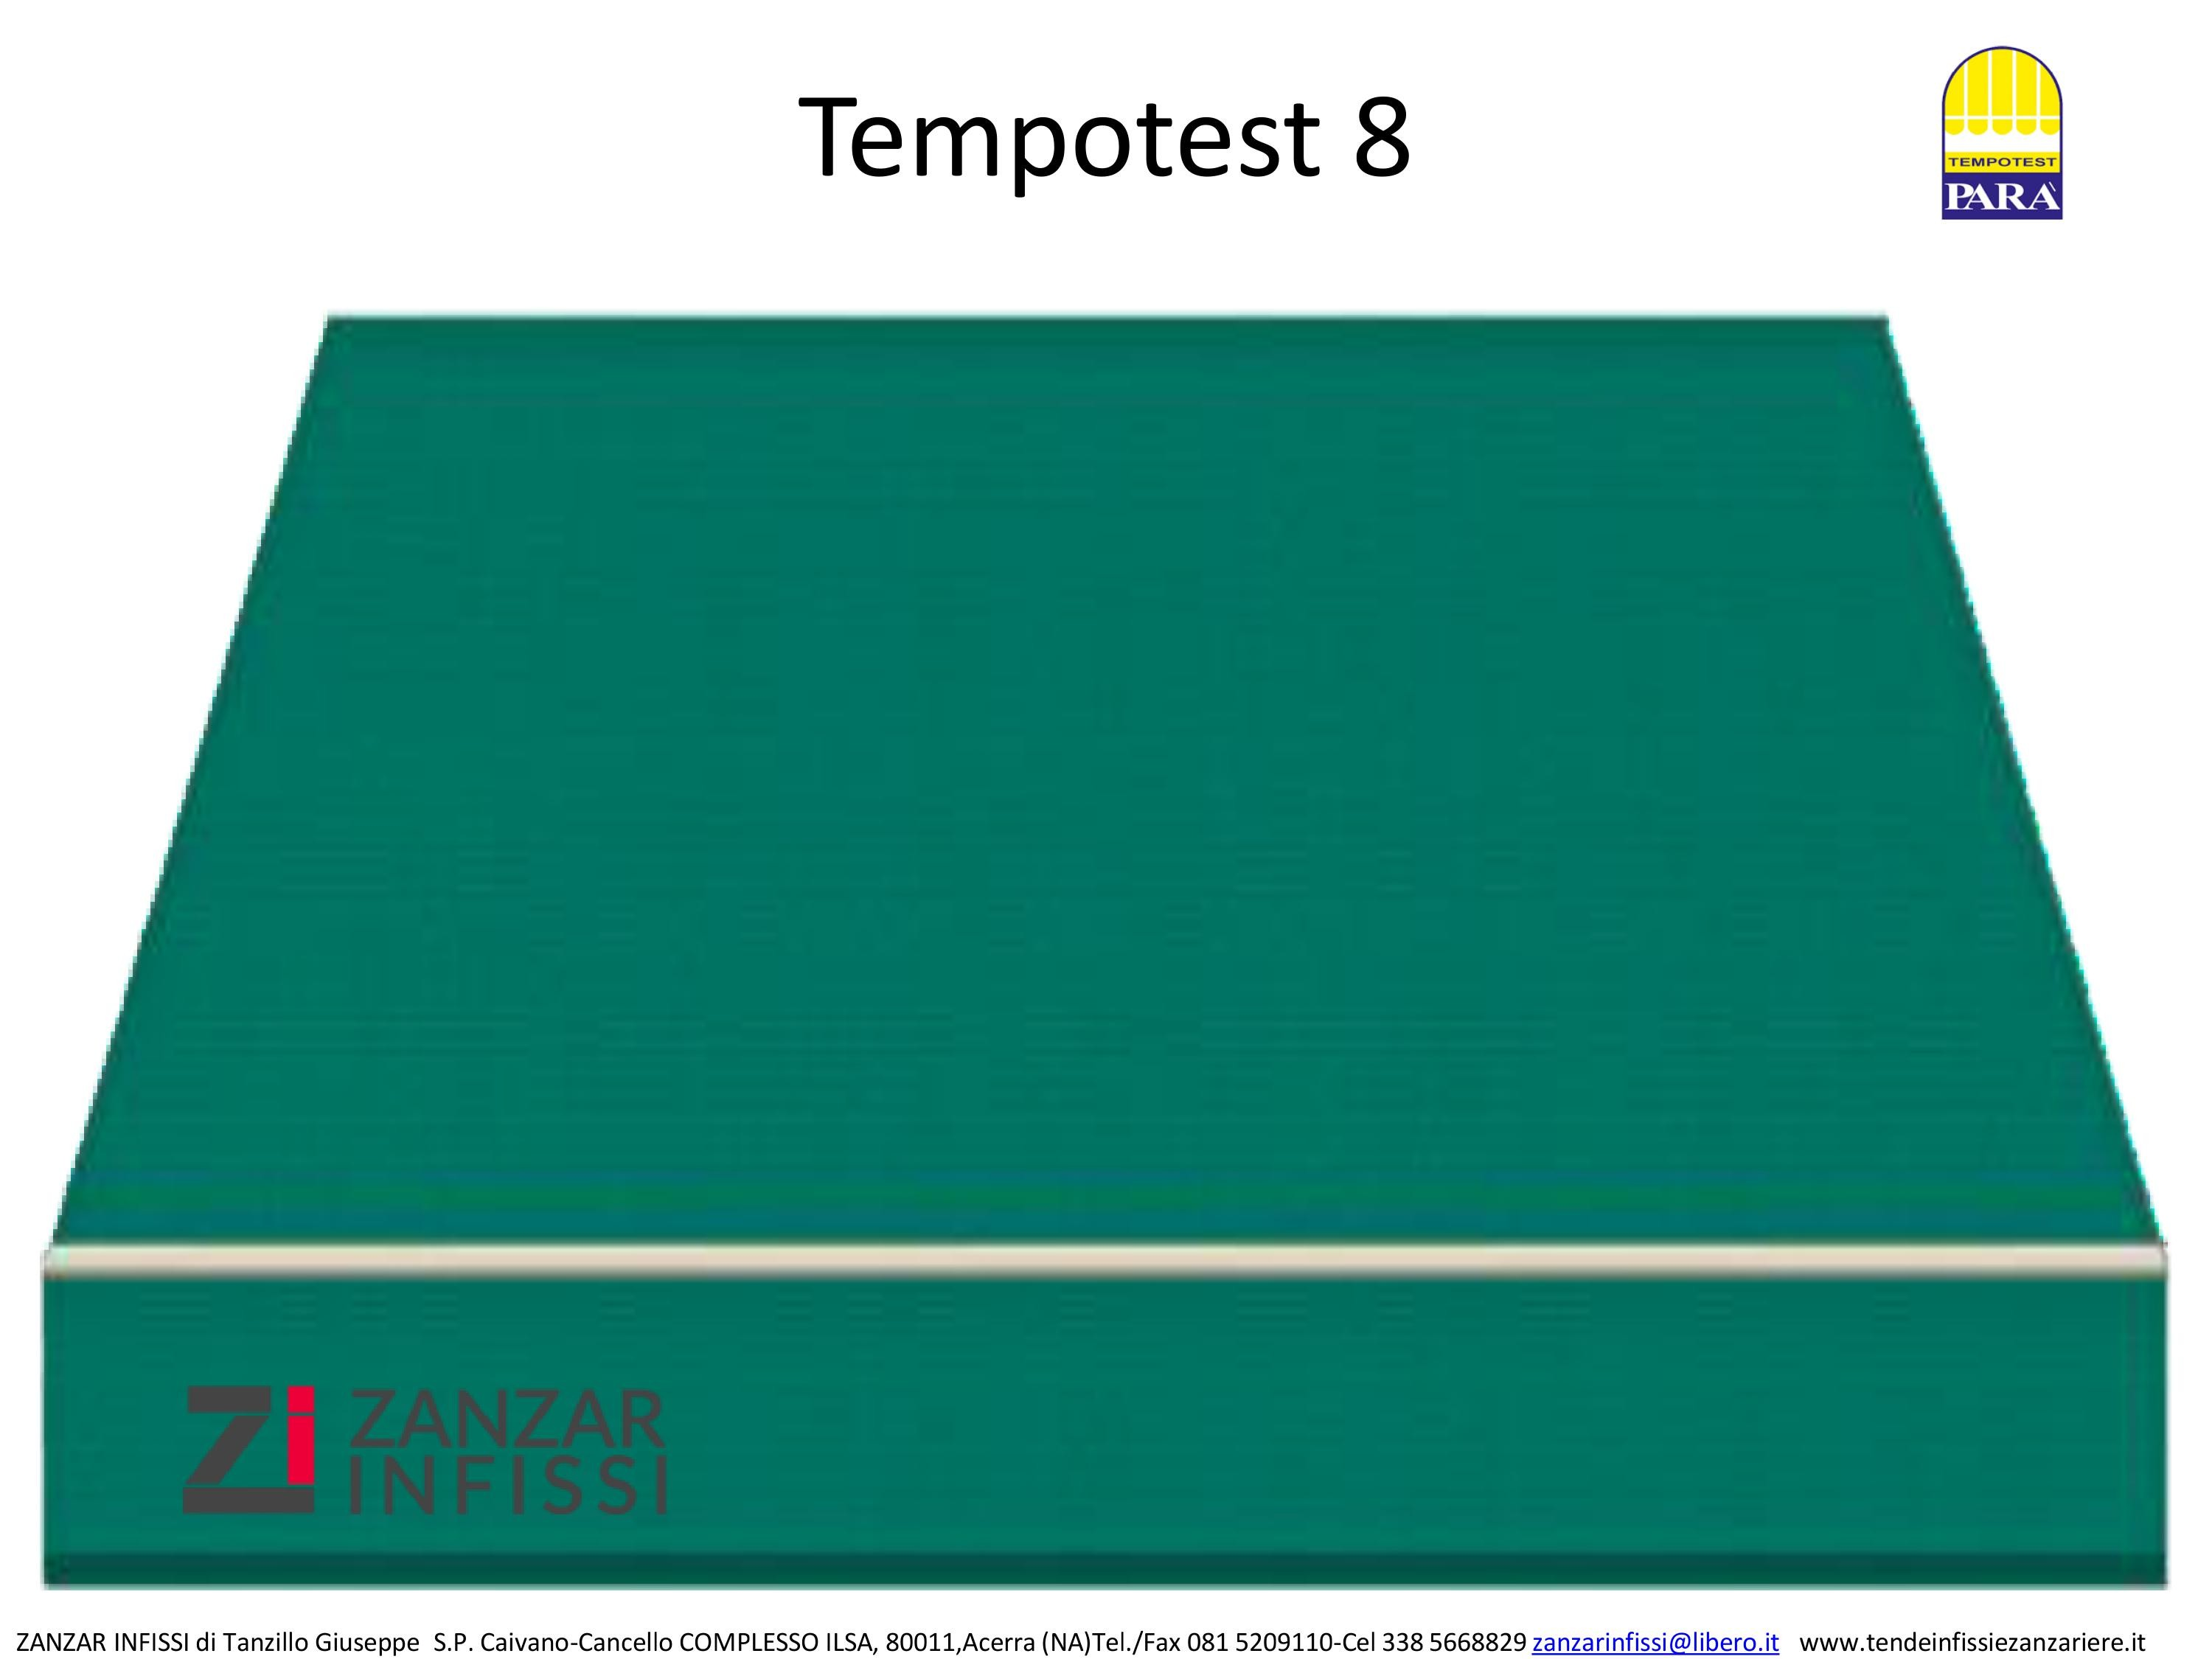 Tempotest 8